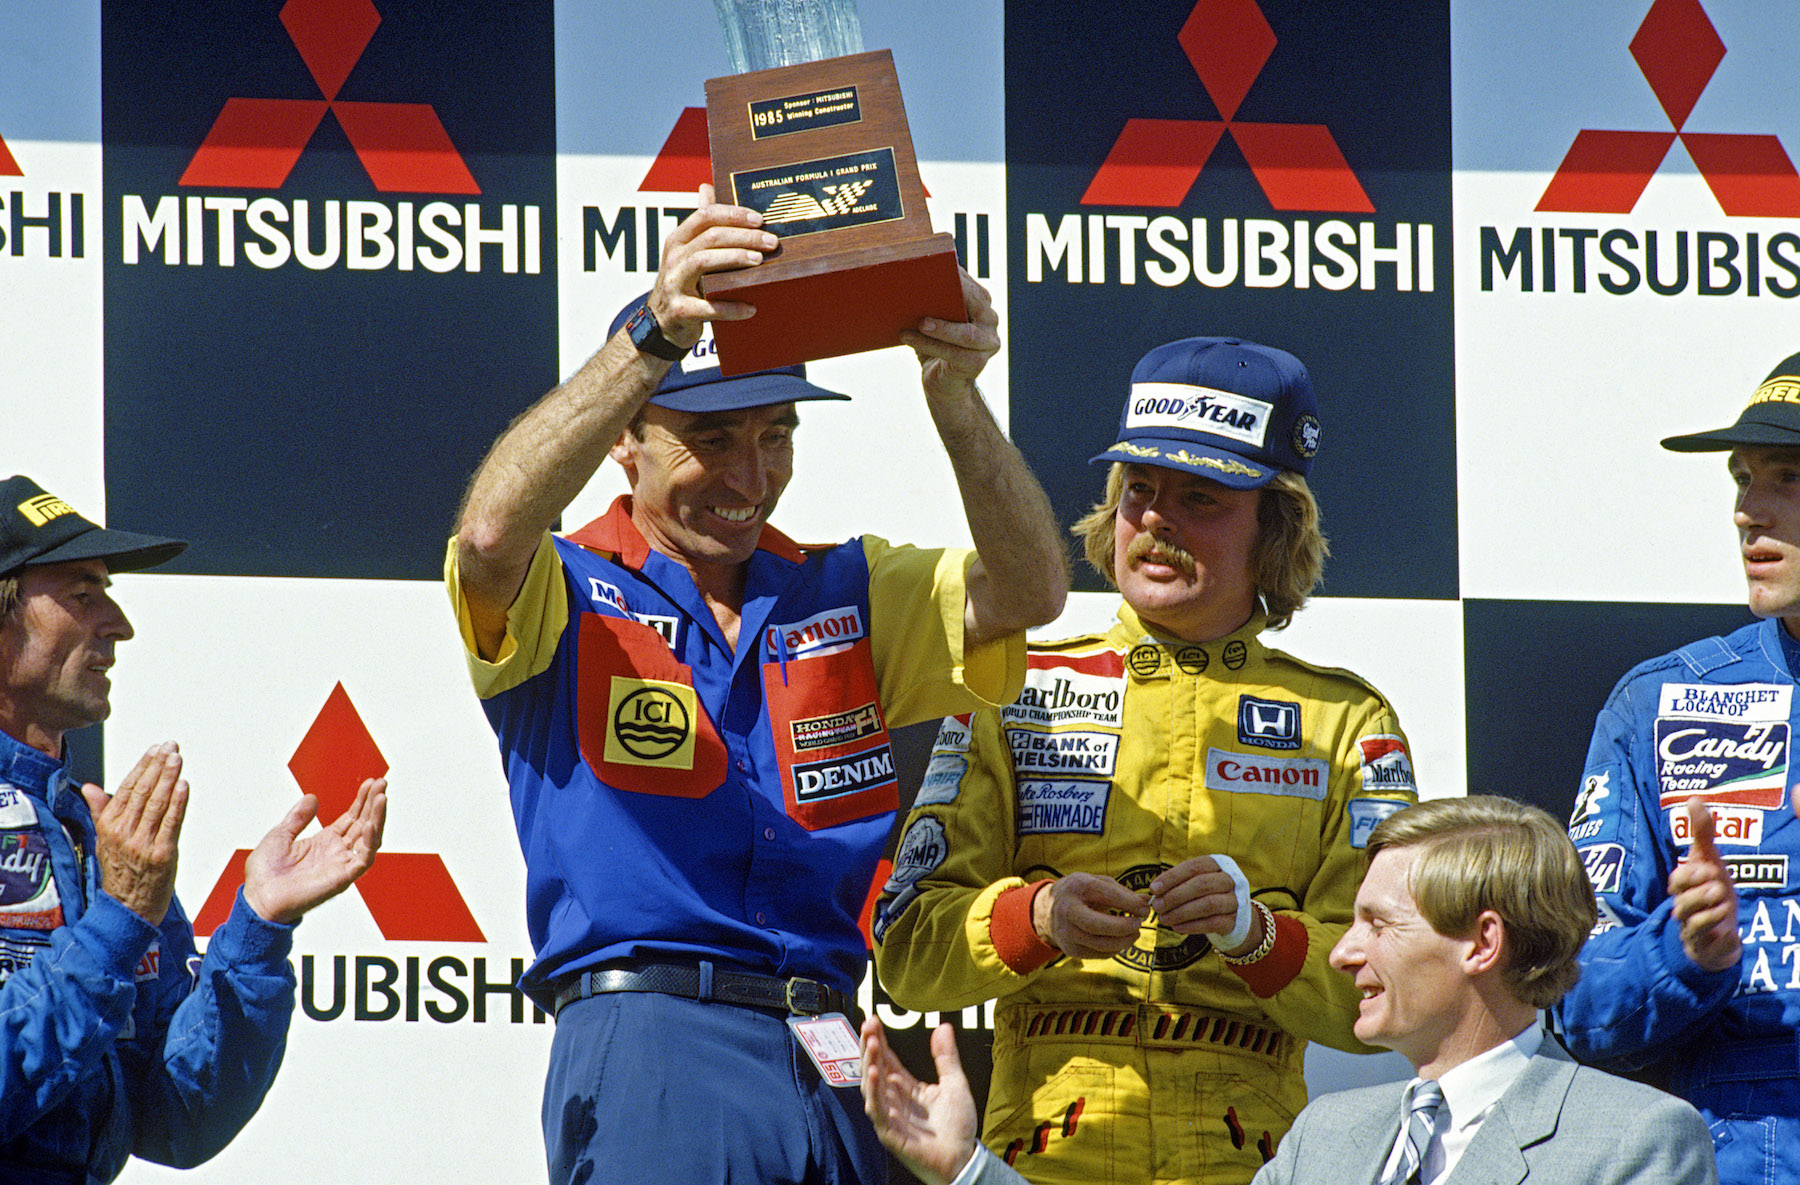 1985 Williams Frank Williams and Keke Rosberg on the top step of the podium after securing a race victory copy.jpg